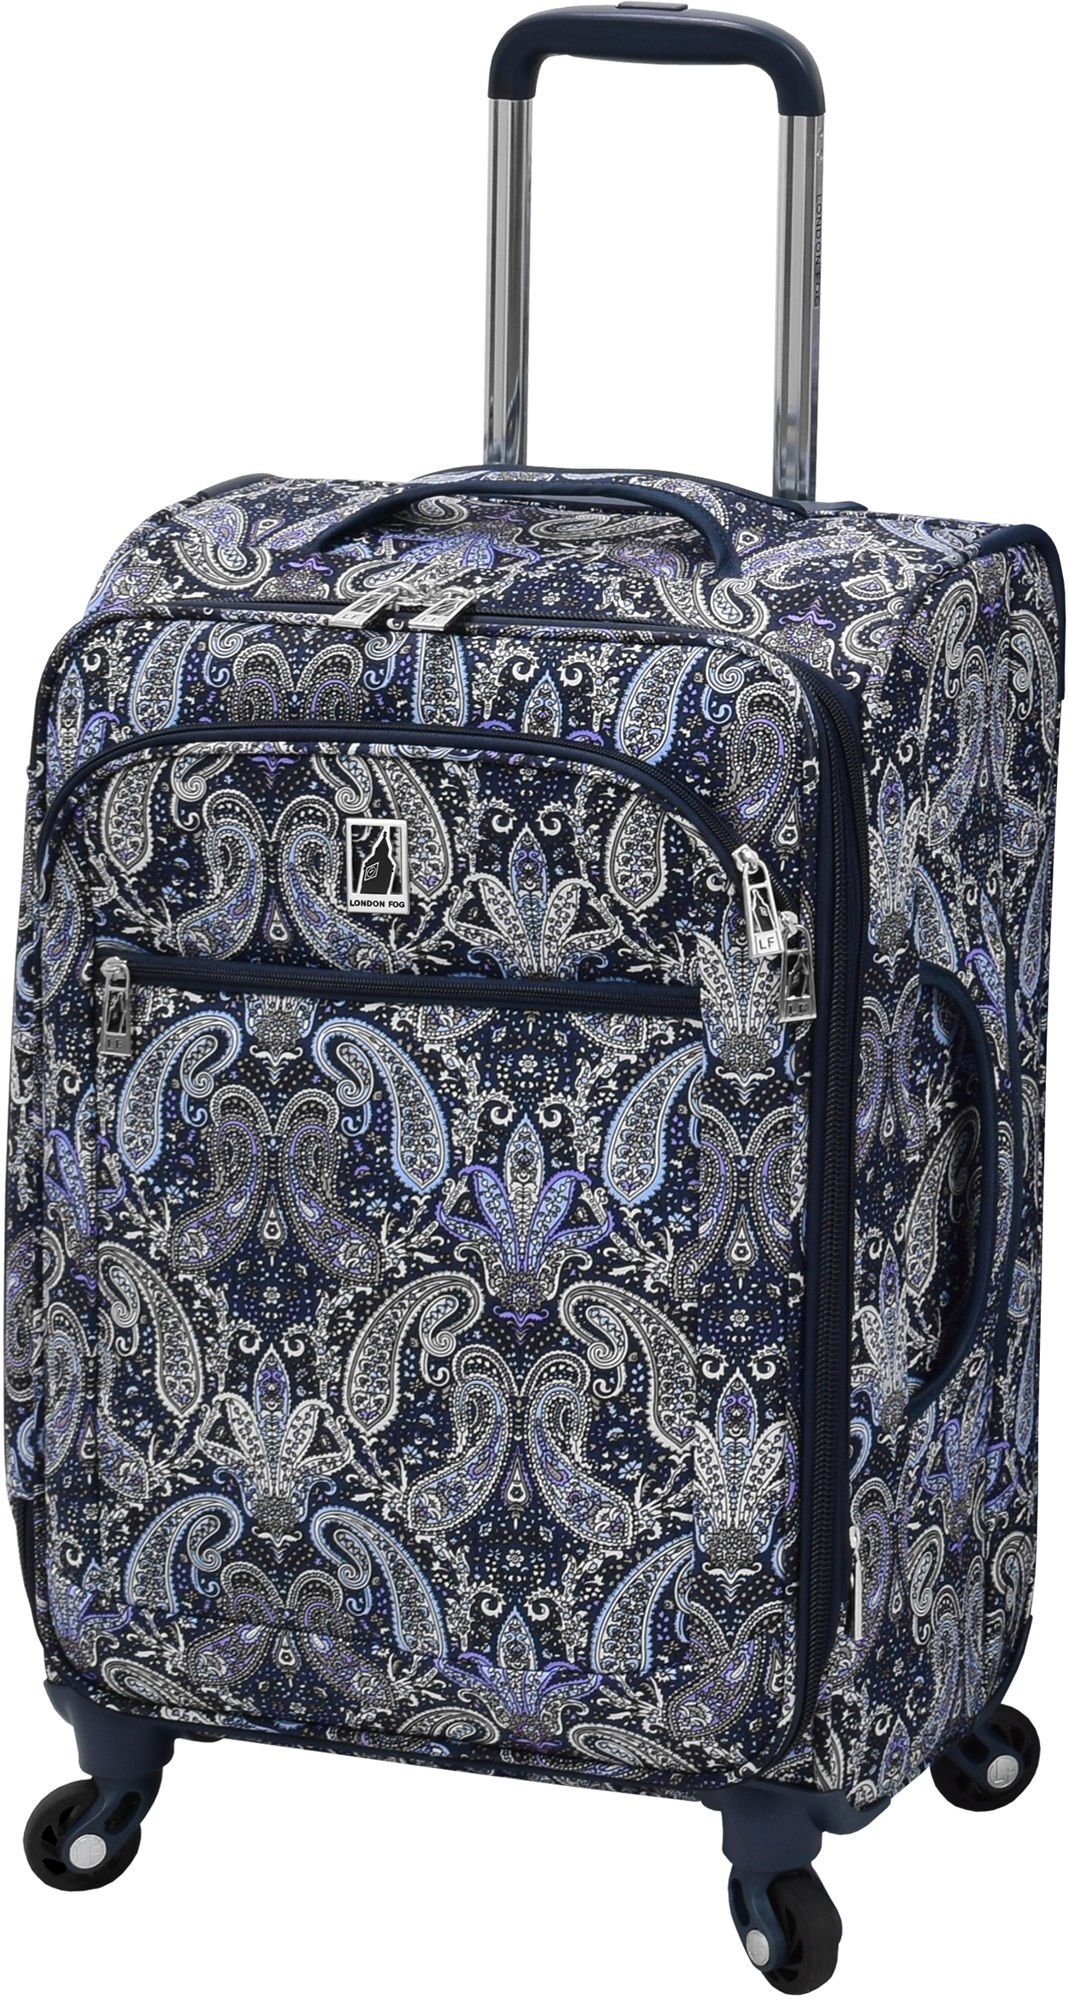 Cheap London Fog Luggage Find London Fog Luggage Deals On Line At